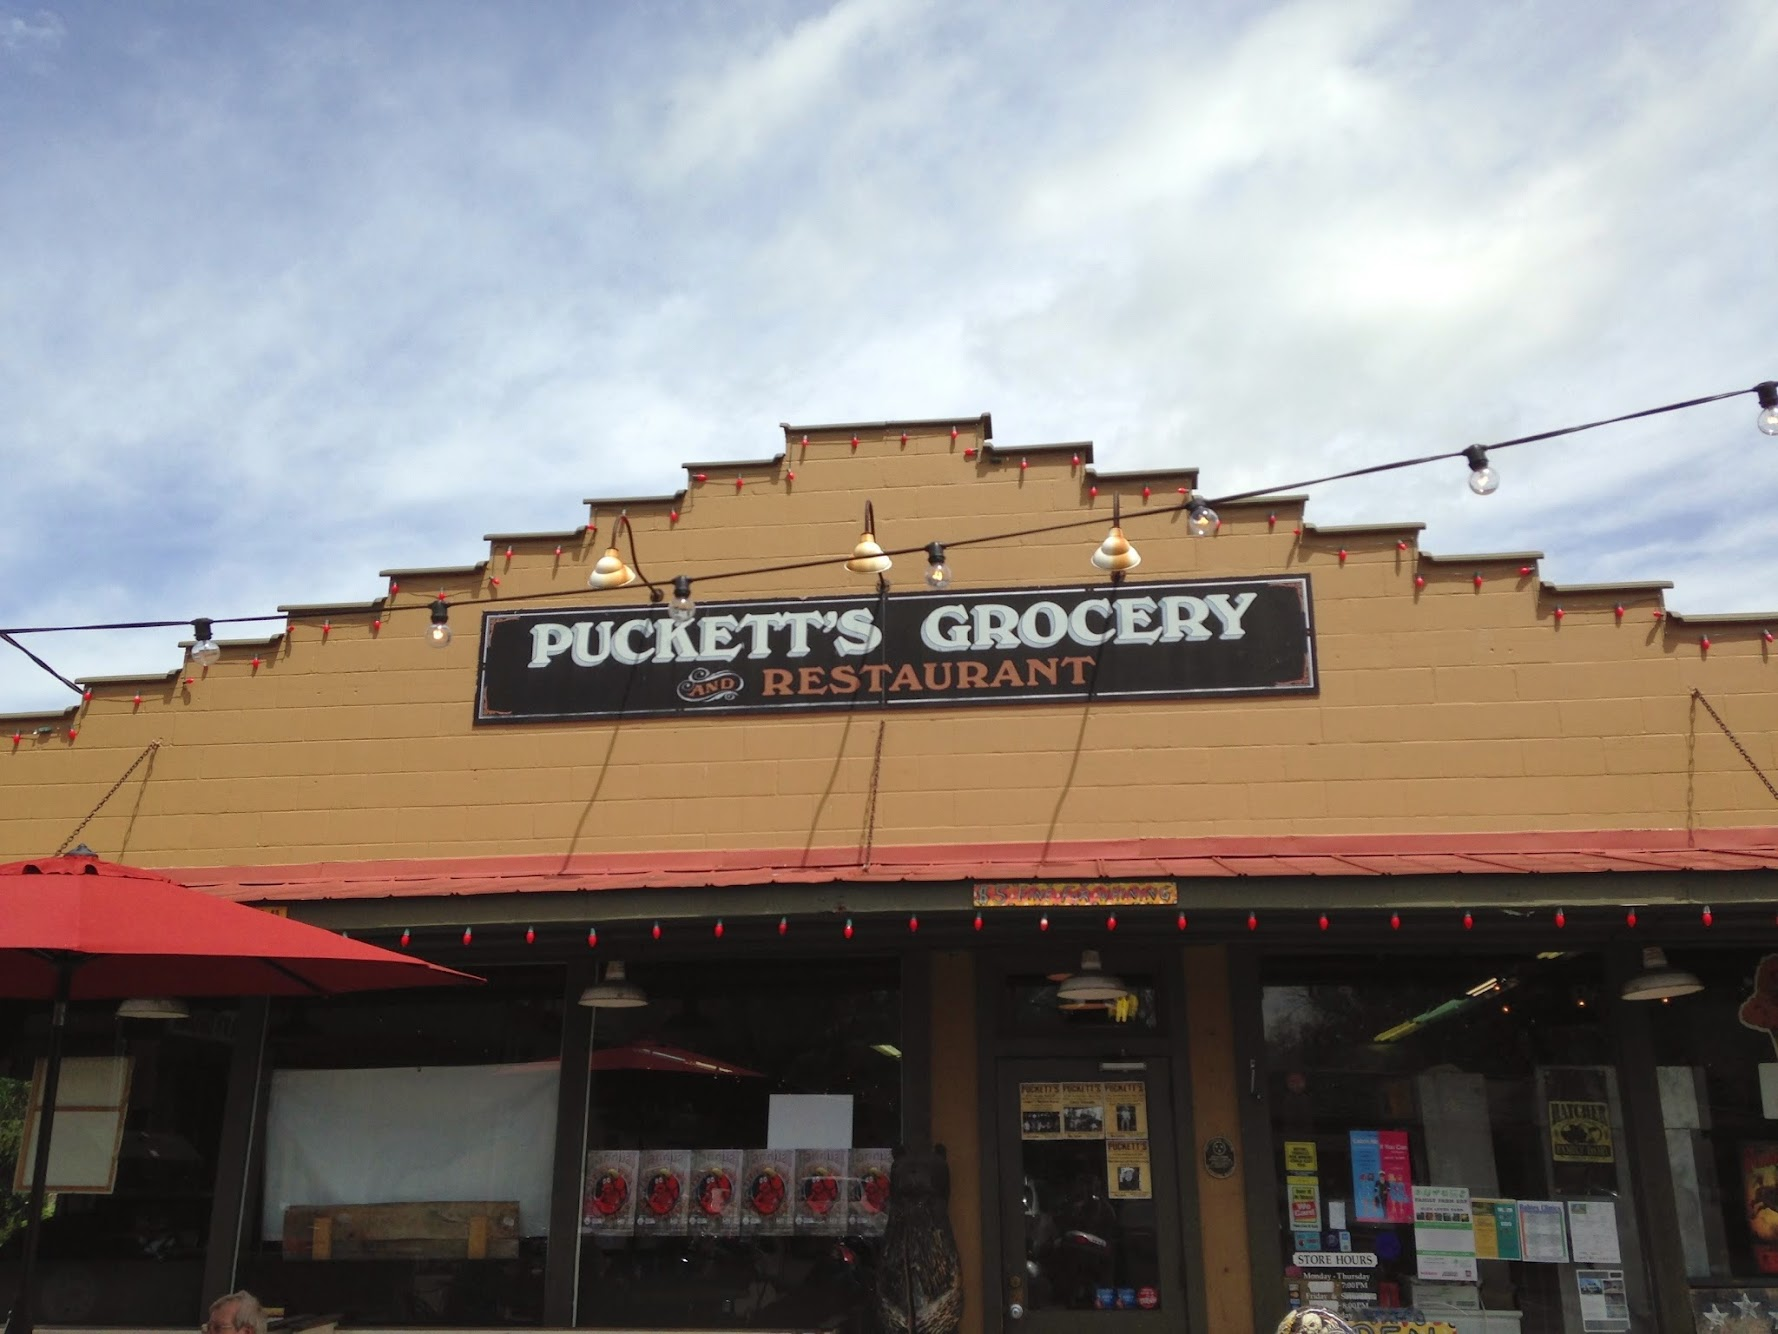 Puckett's Grocery